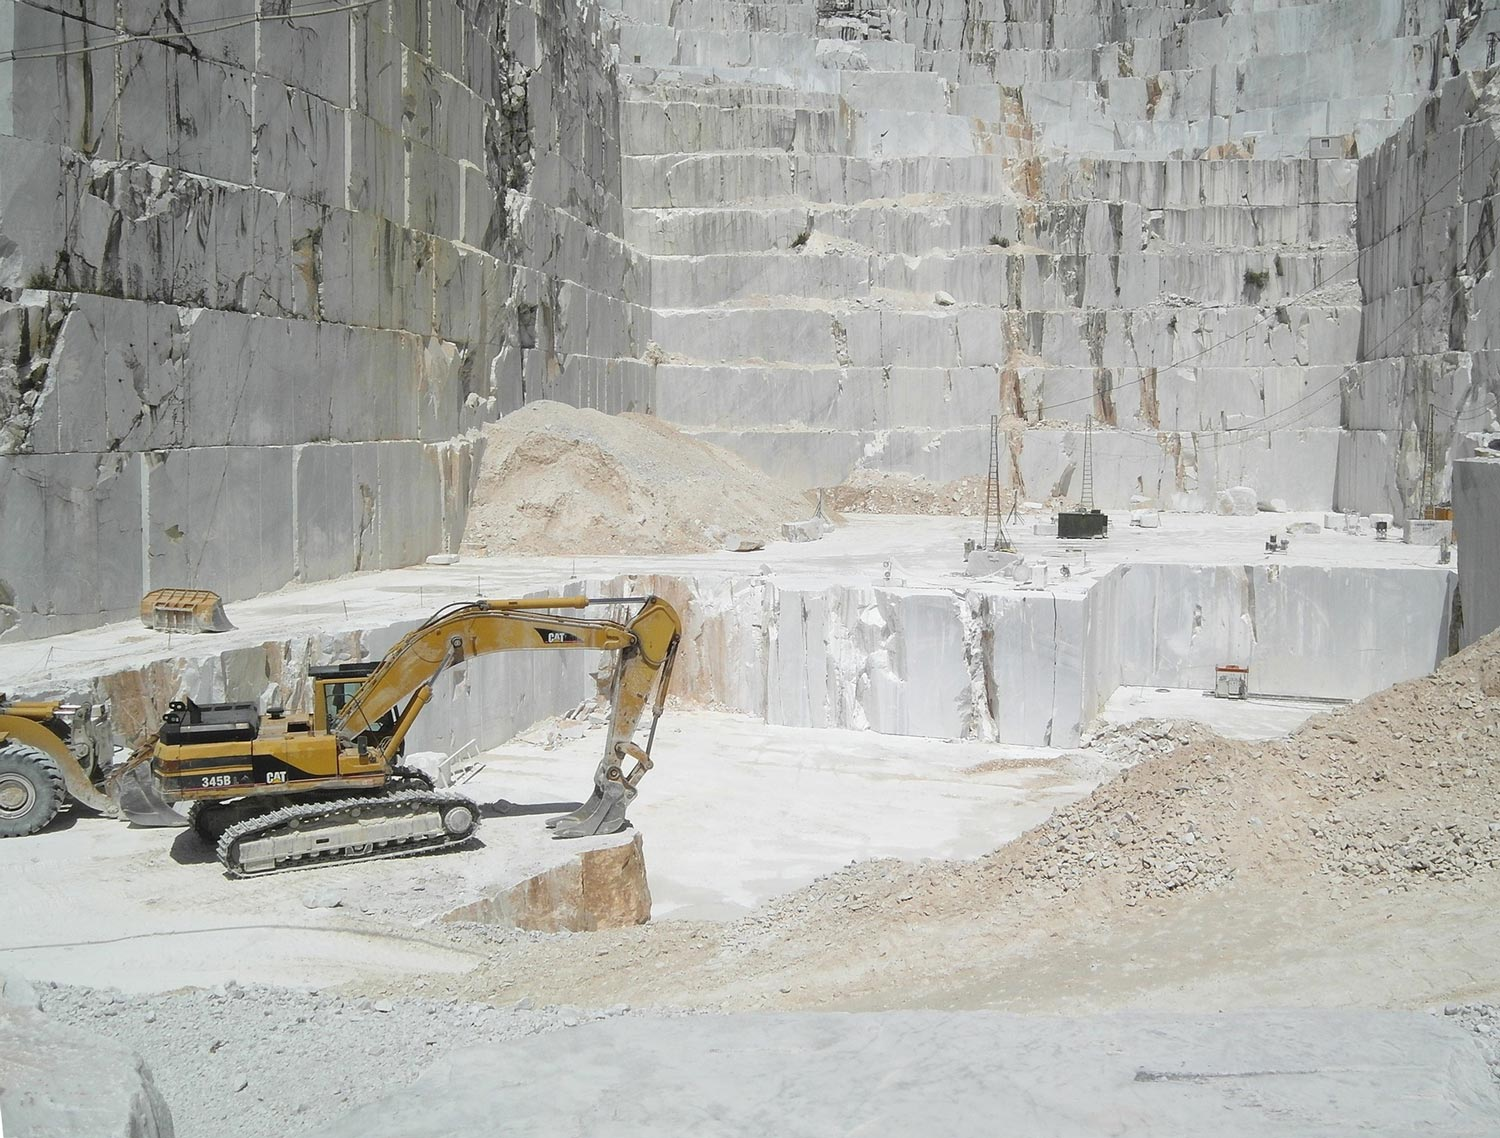 Carrara quarries-Krome Italian Refurbishing-04